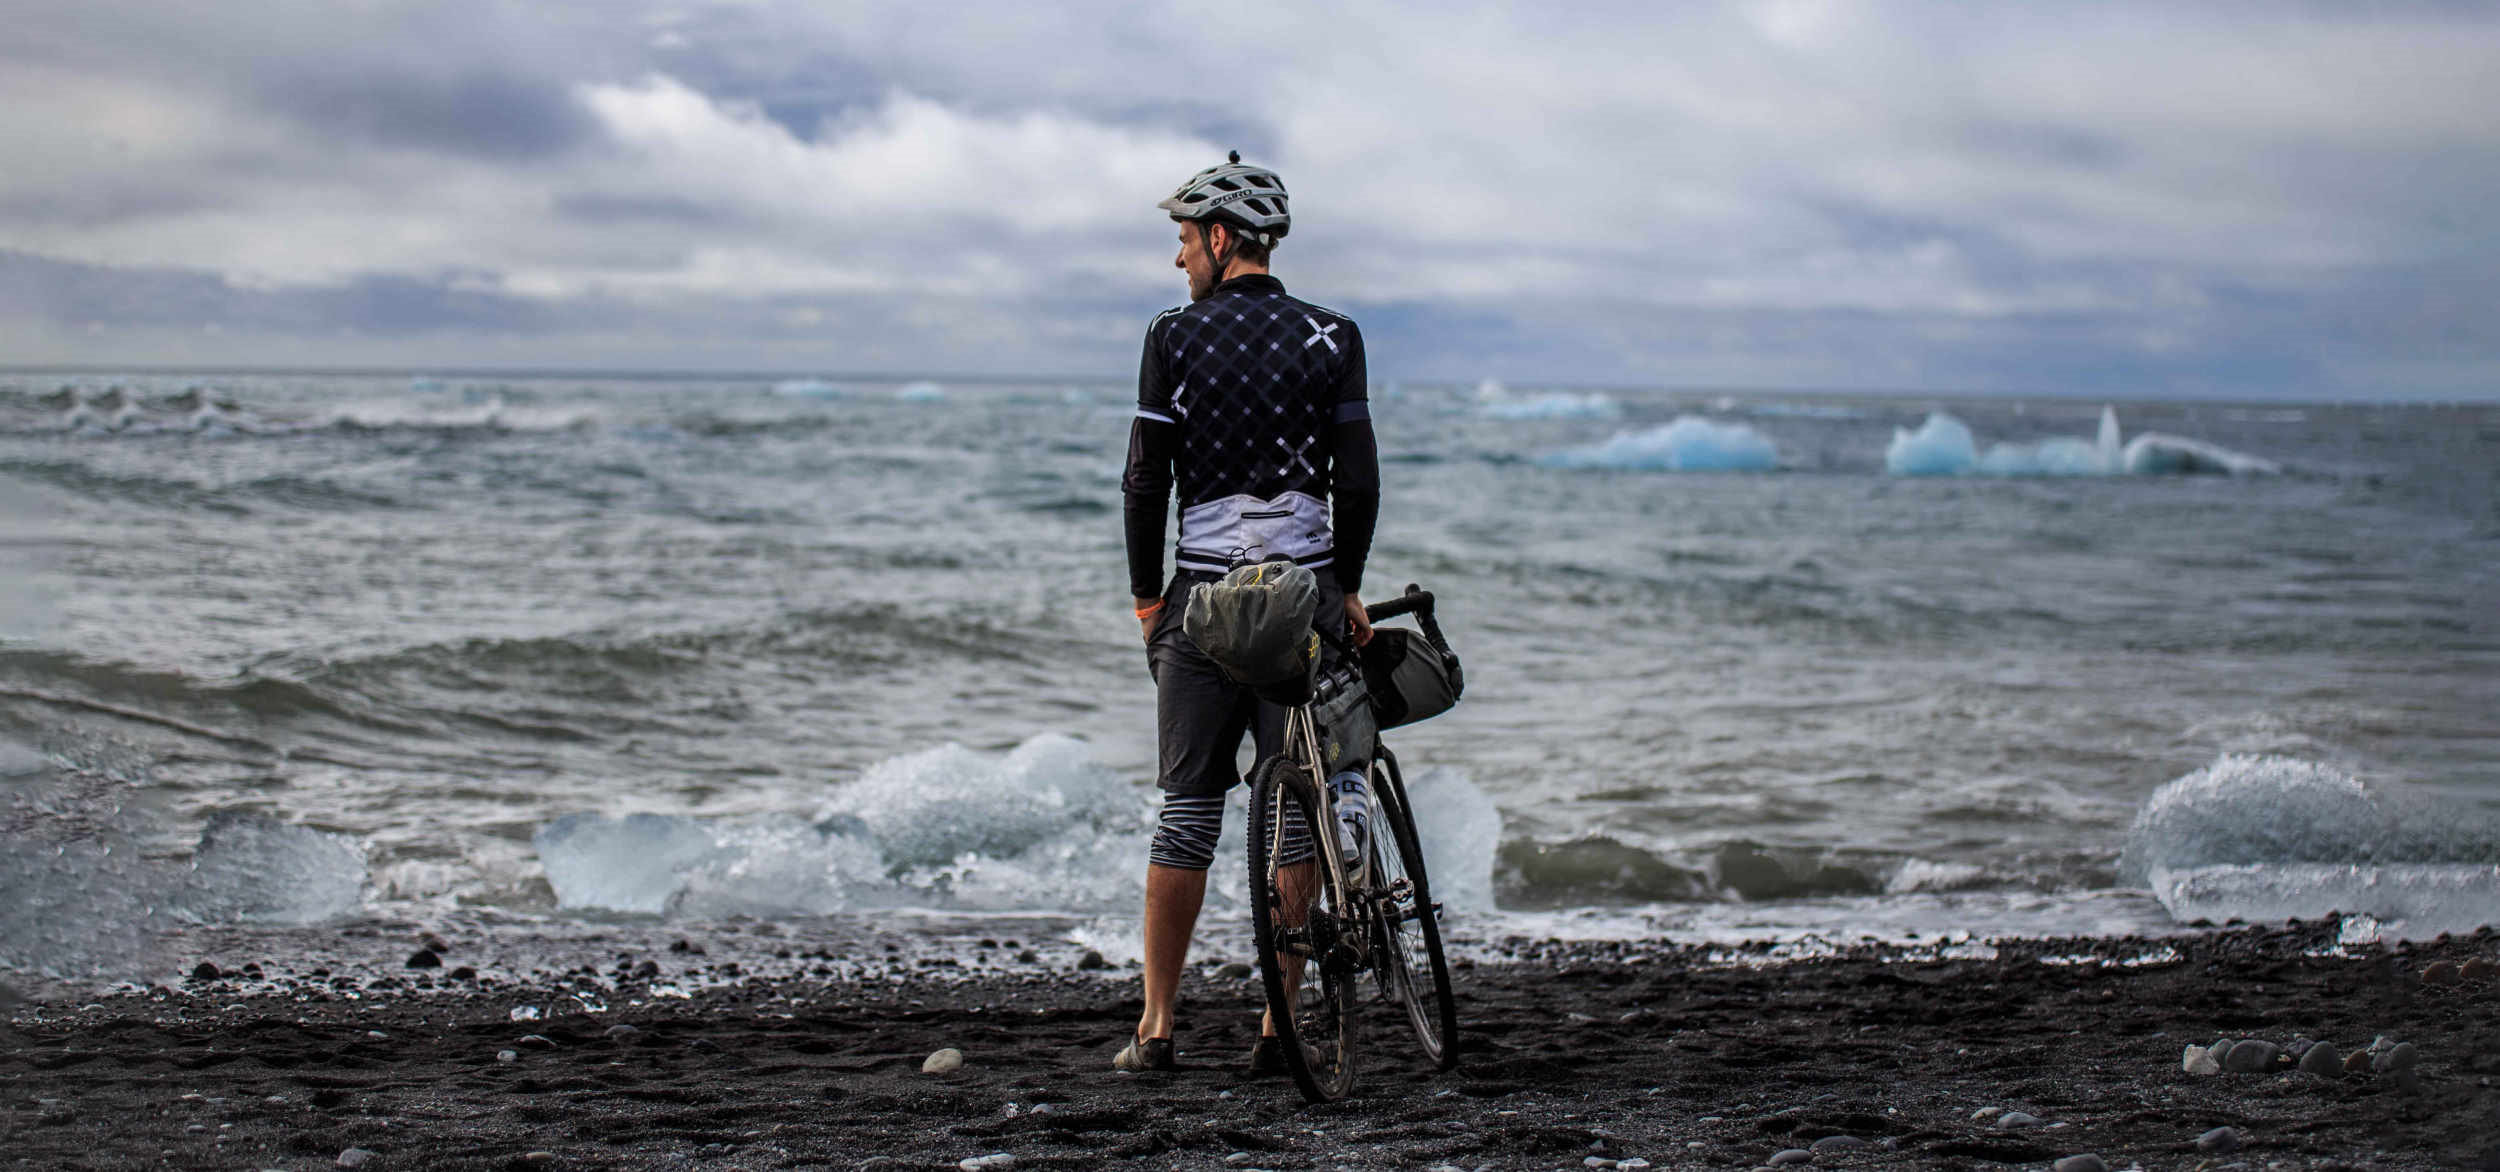 Man resting on bike during Bikepacking trip to Iceland's black beach with iceberg in the sea